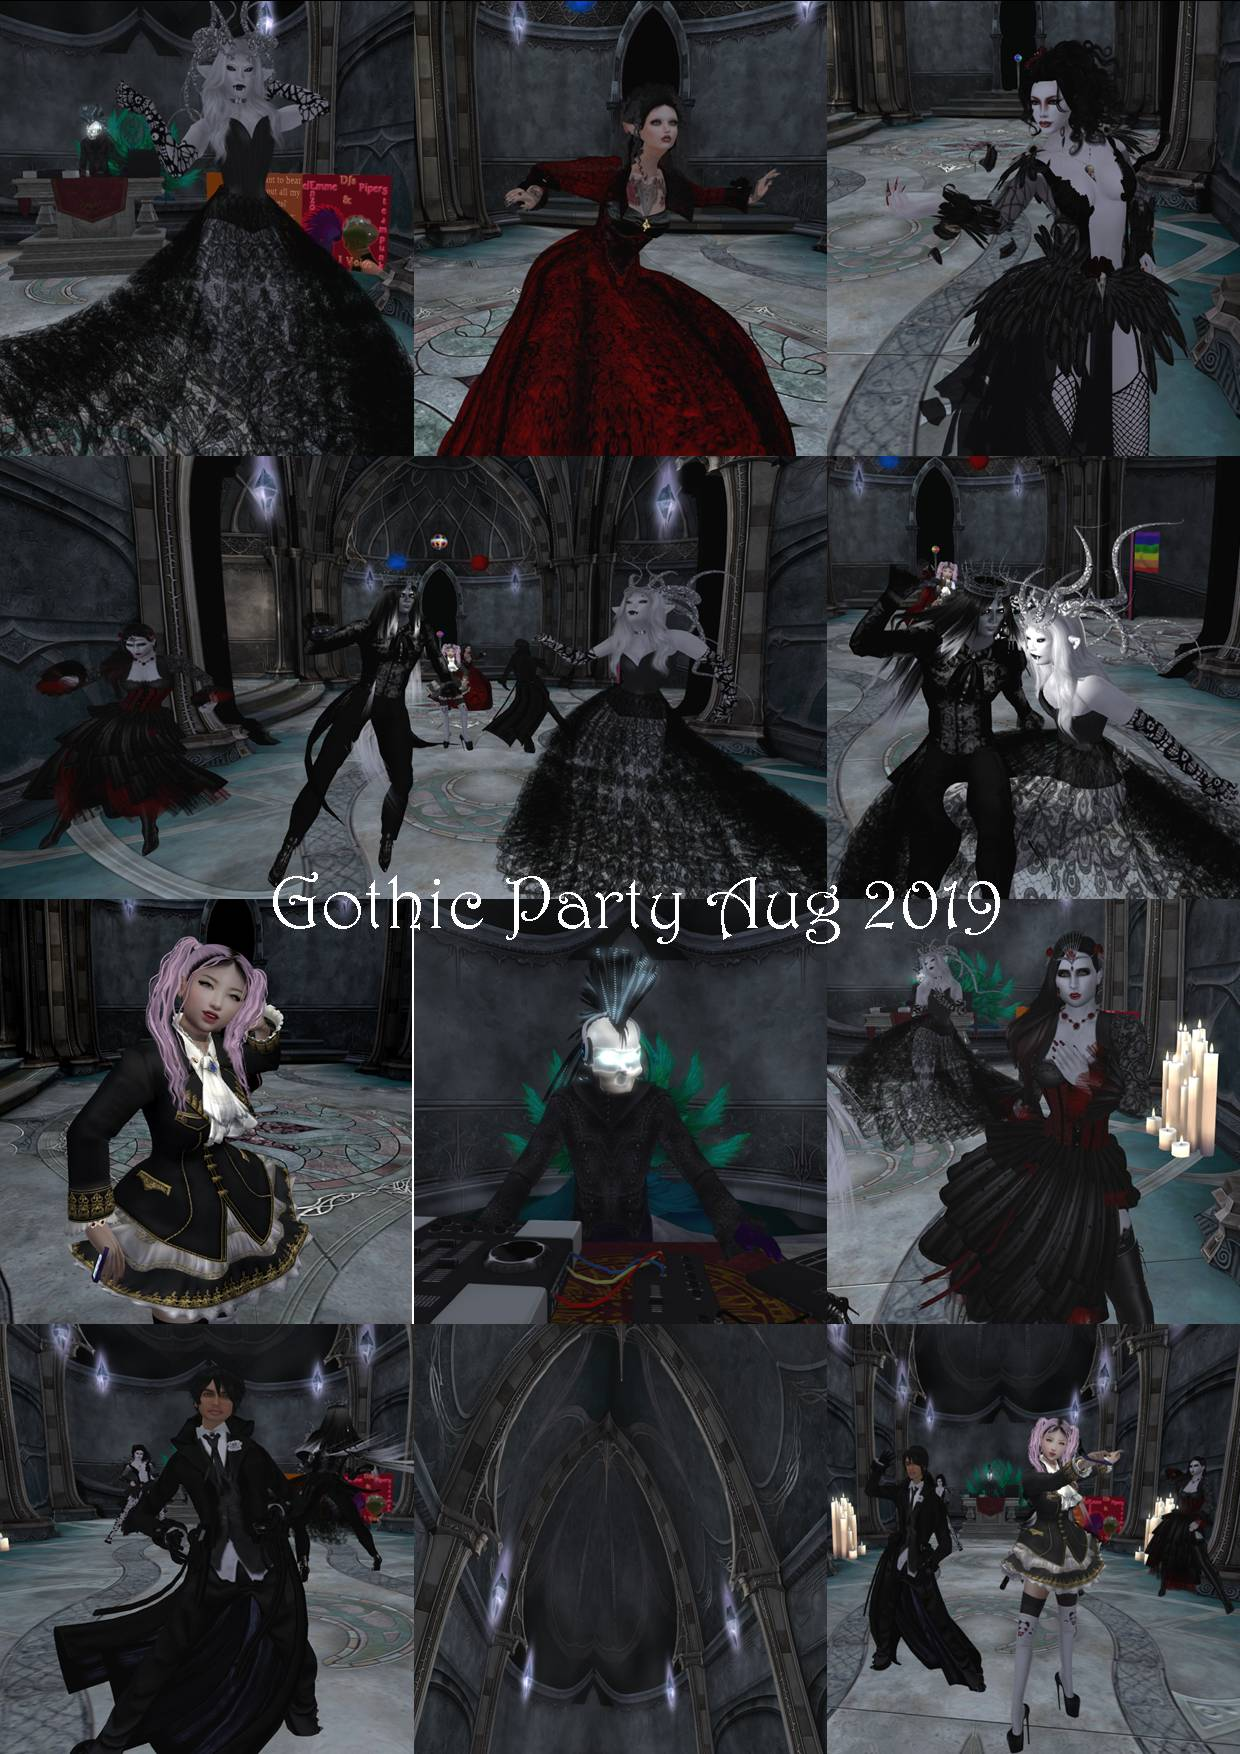 GOTHIC PARTY COLLAGE AUG 2019